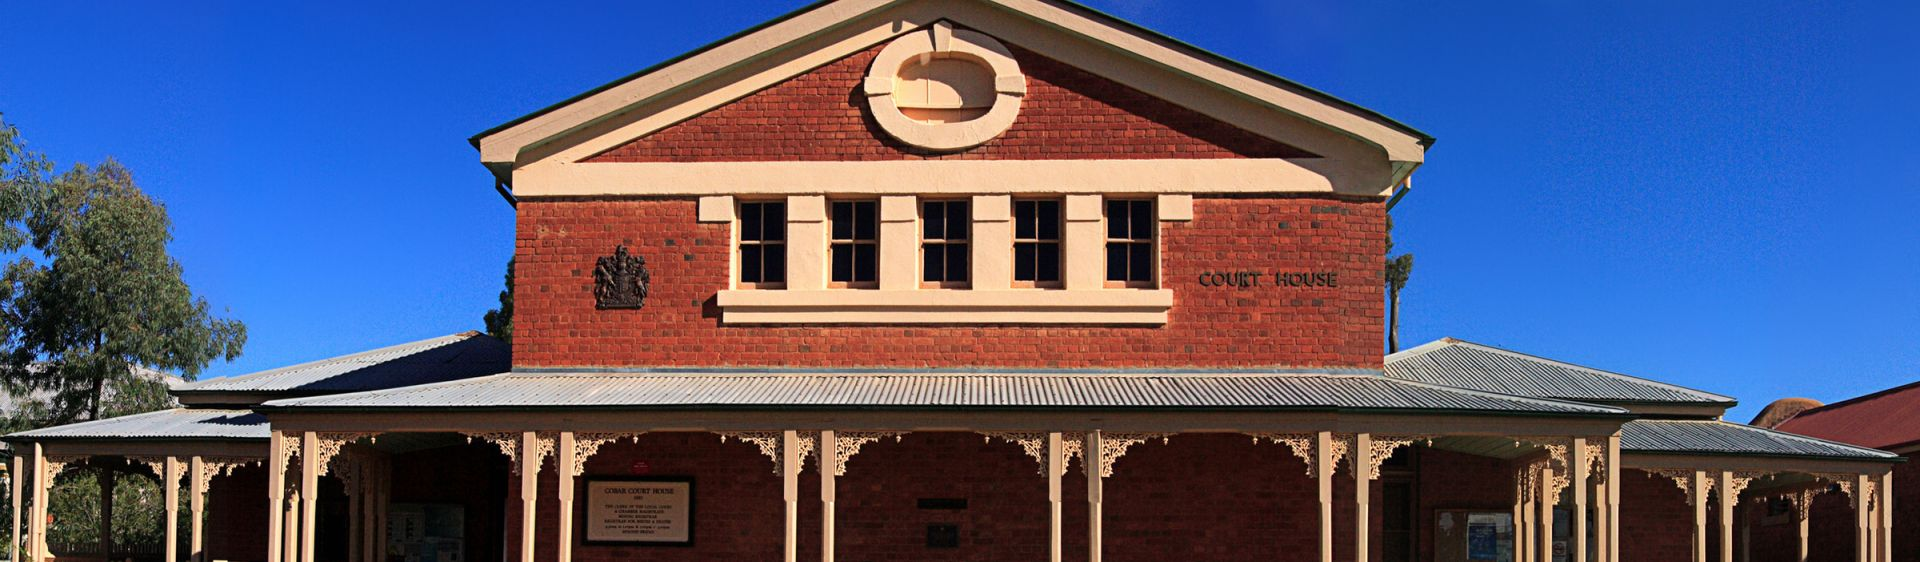 Cobar Court House